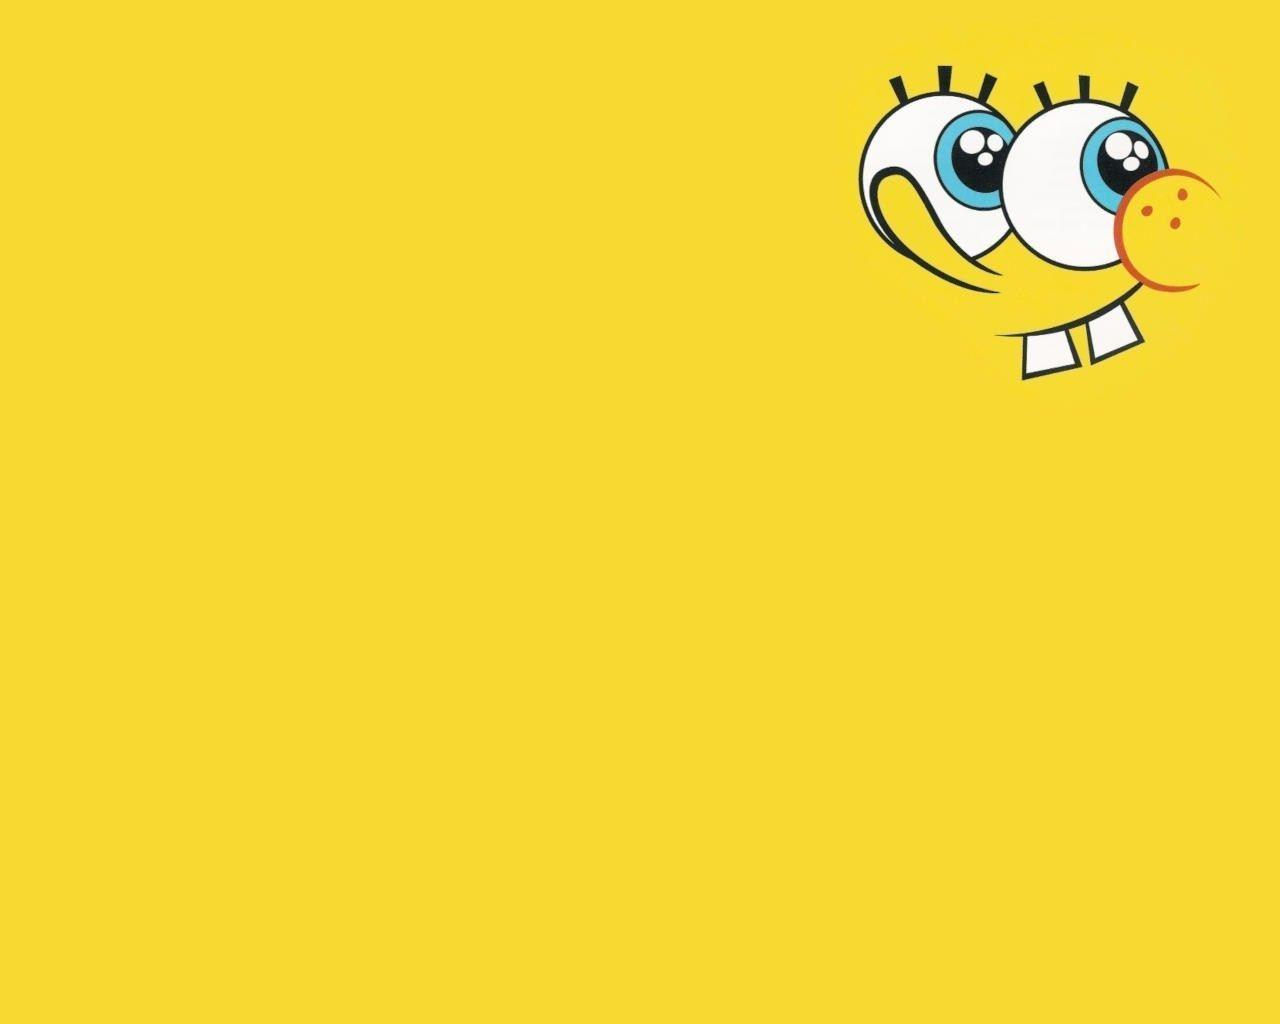 Spongebob - Spongebob Squarepants Wallpaper (8297815) - Fanpop